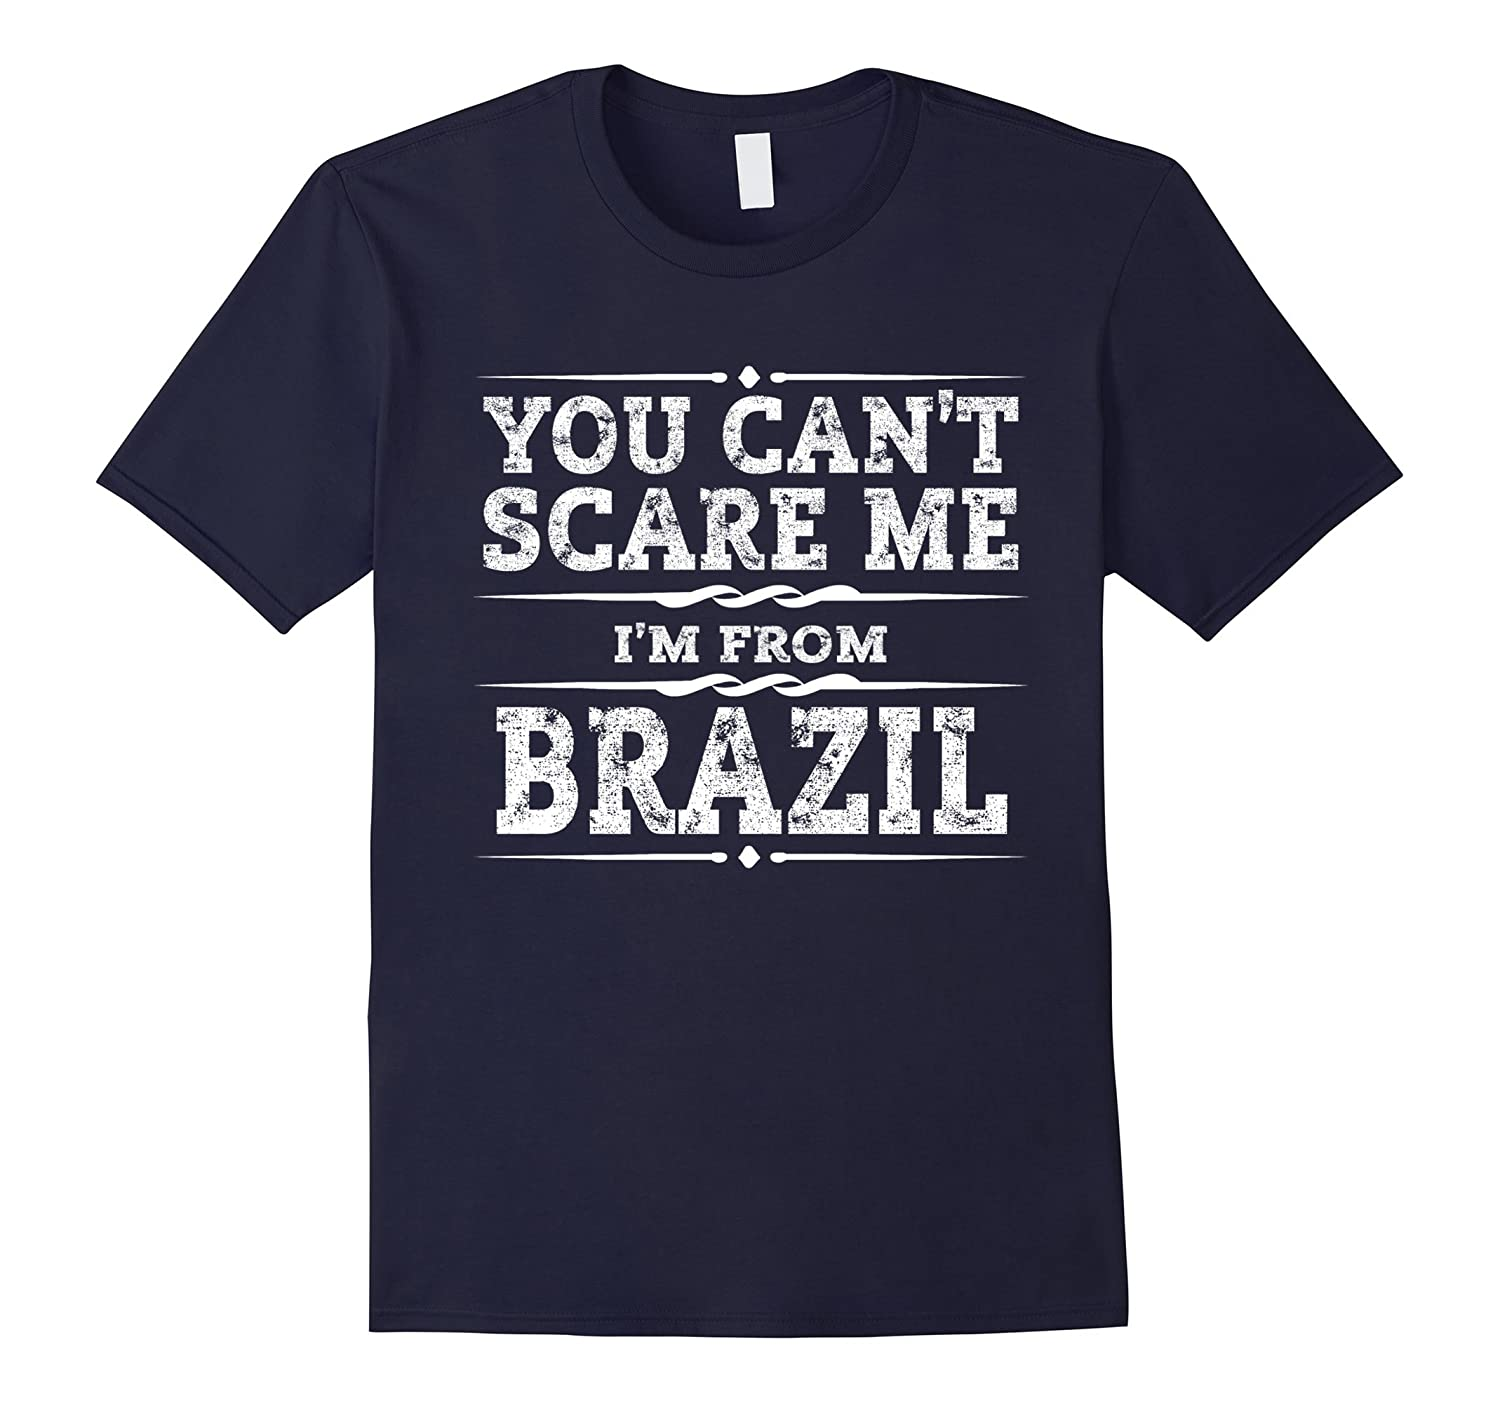 You can't scare me, I'm from Brazil Tshirt - Brazil Gift-TH